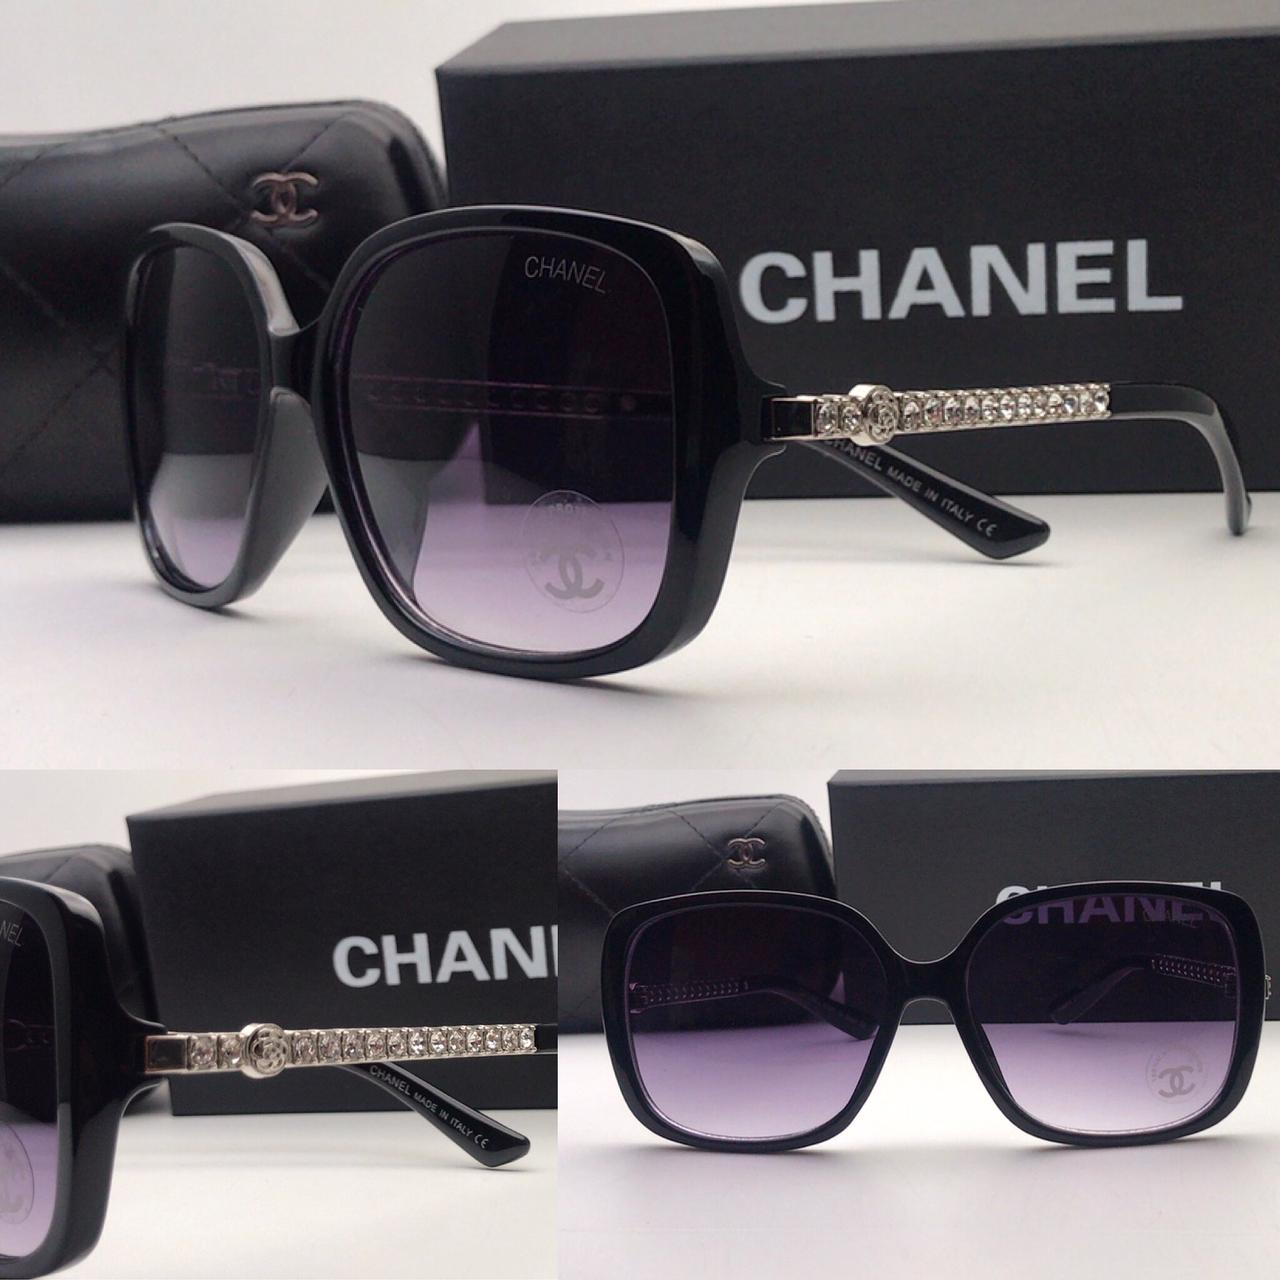 Chanel new Sunglasses for Women with Brand Box